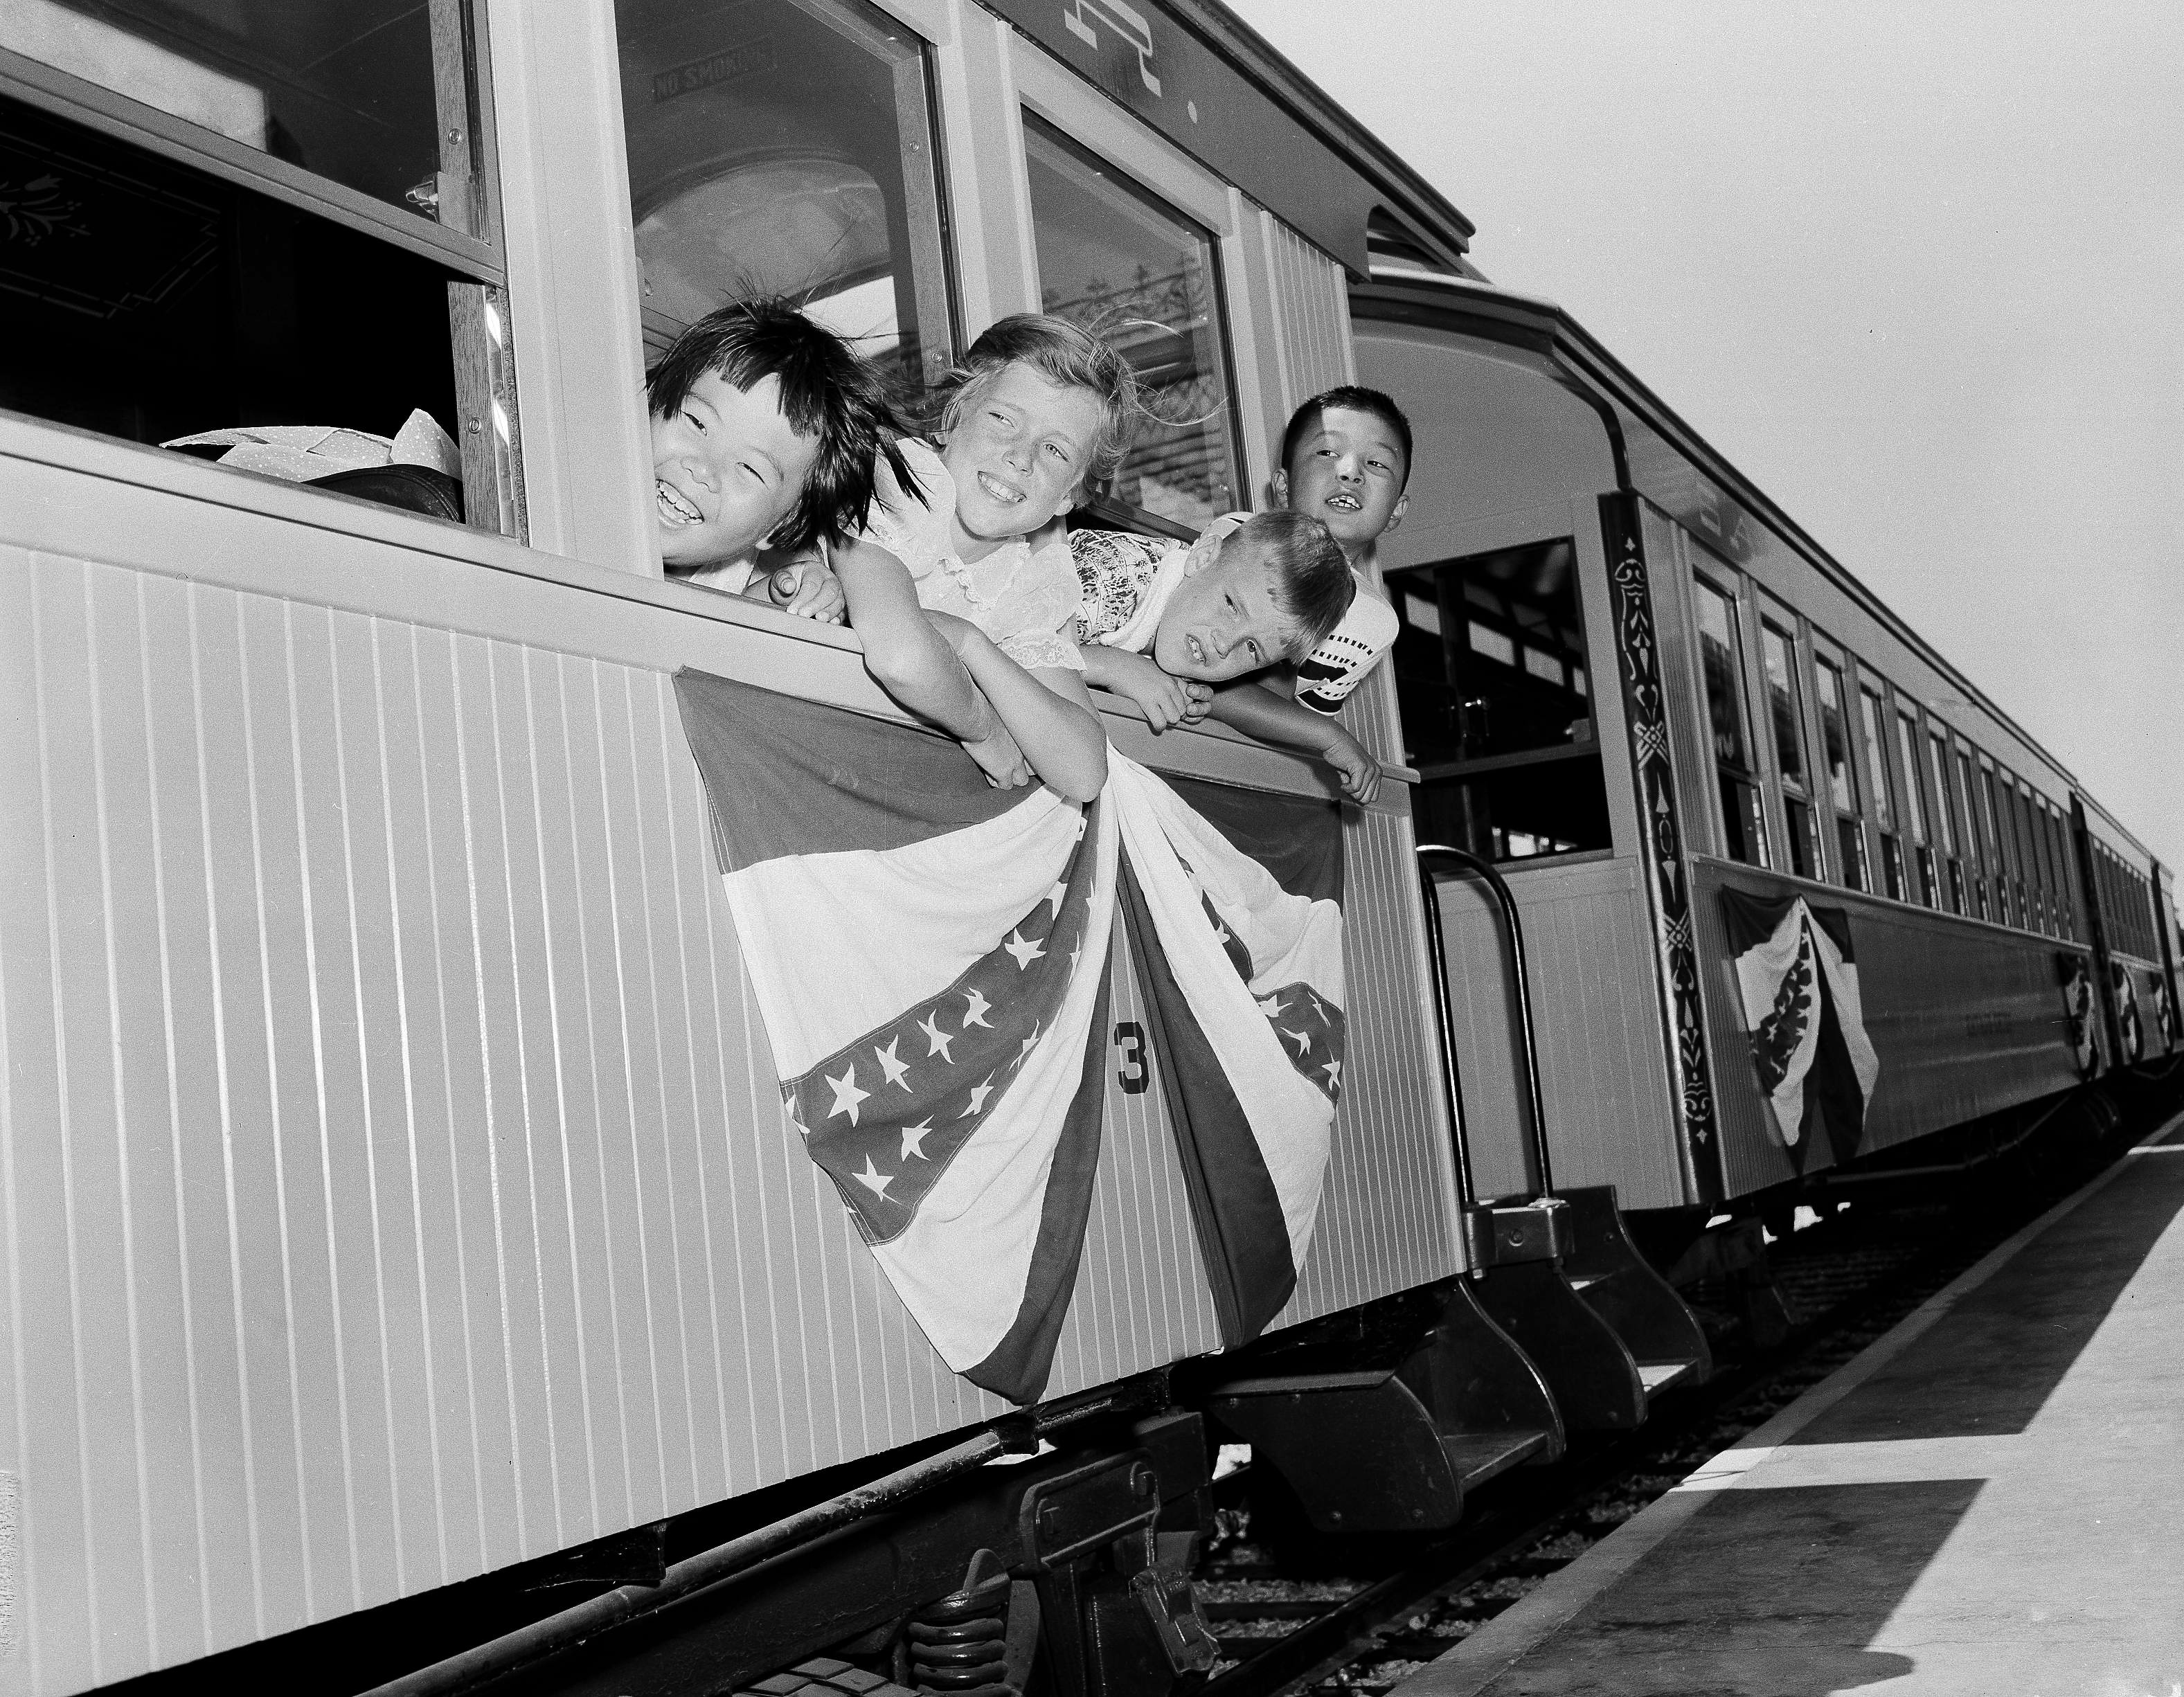 Slide 6 of 33: Children ride an old-time train around the 160 acre Disneyland, in Los Angeles, Calif., July 22, 1955. Disneyland opened in doors five days before on July 17. (AP Photo/Edward Kitch)